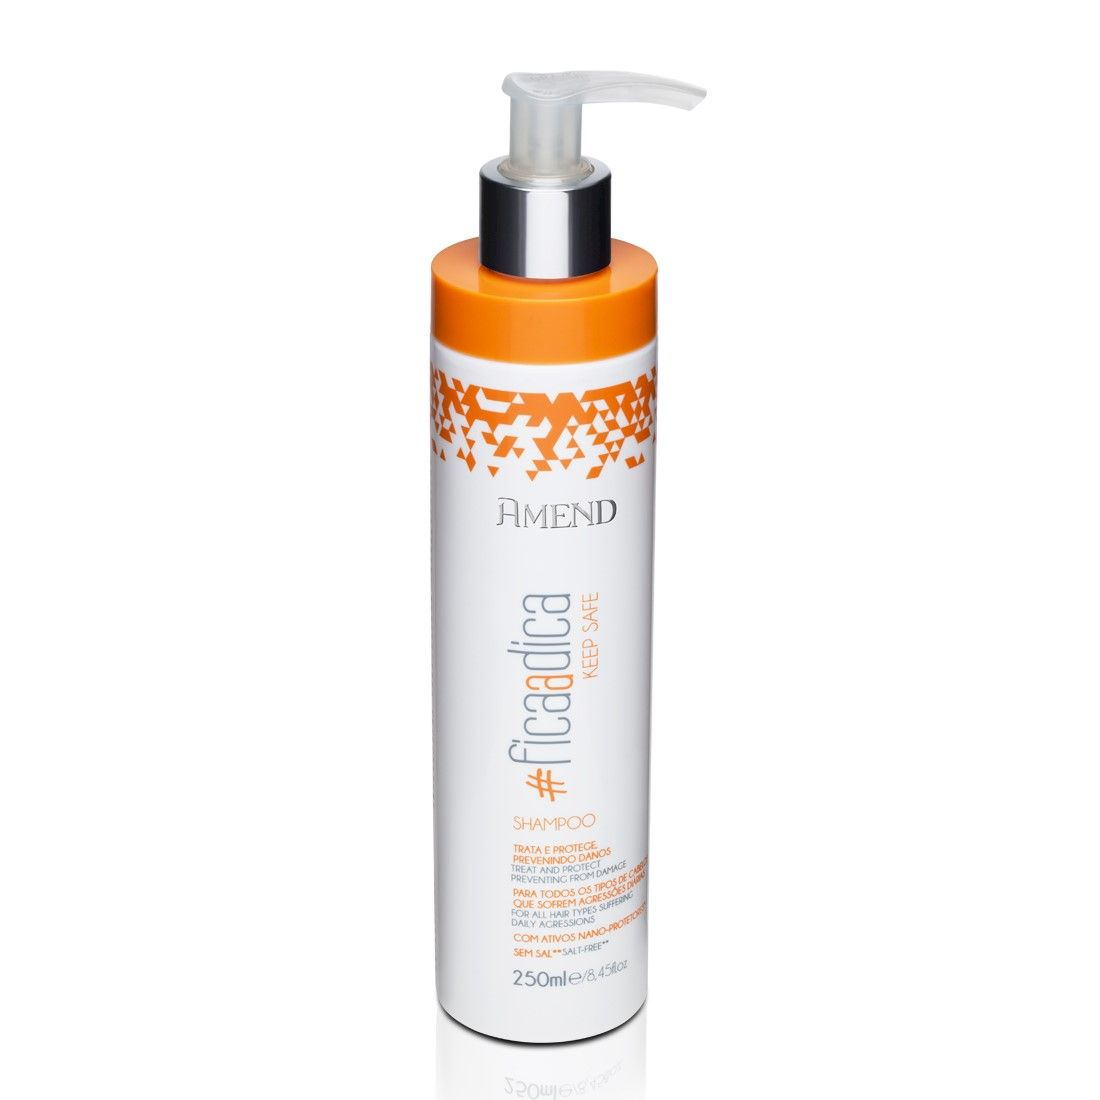 Amend #Ficaadica Keep Safe Shampoo 250ml